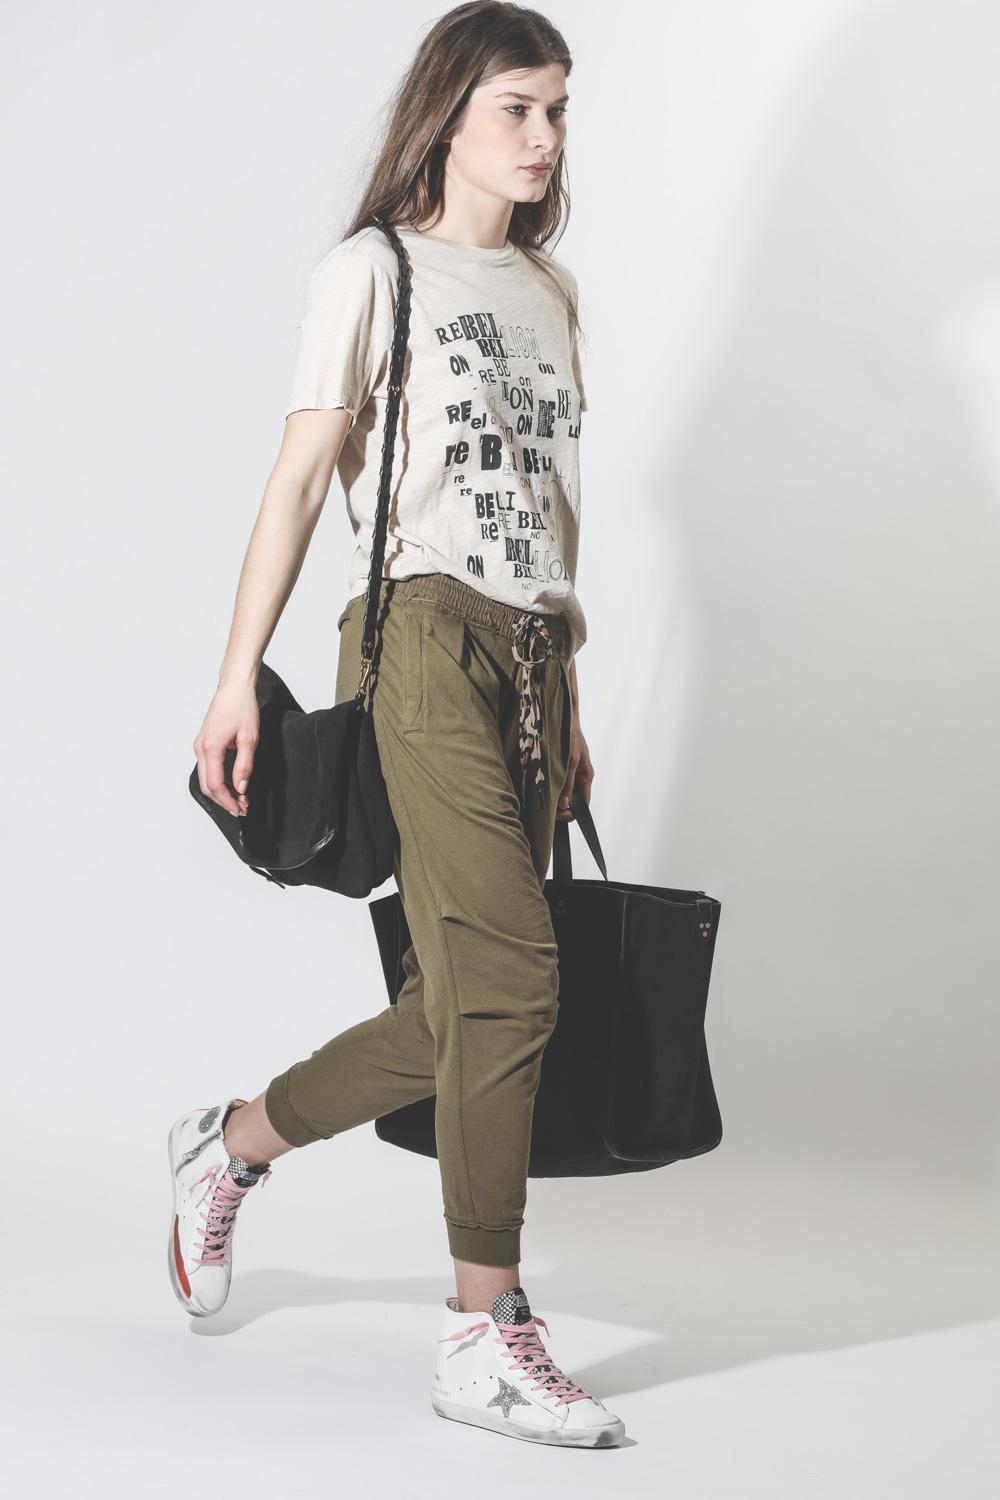 R13 Denim Collection Harem Sweatpant - Olive